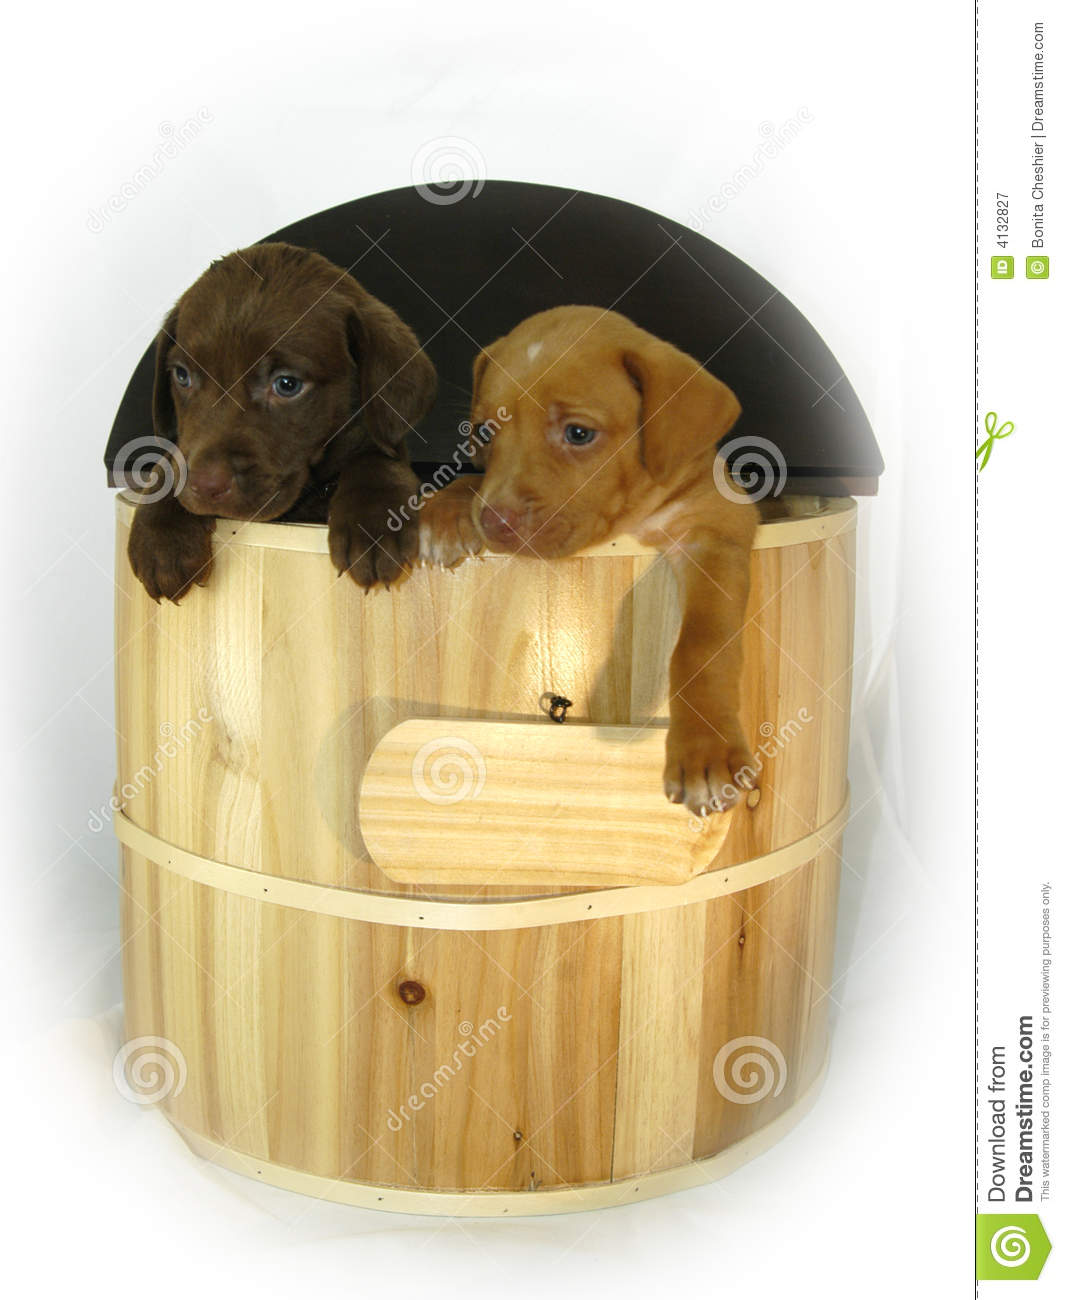 Barrel dogs doleful hang out wooden